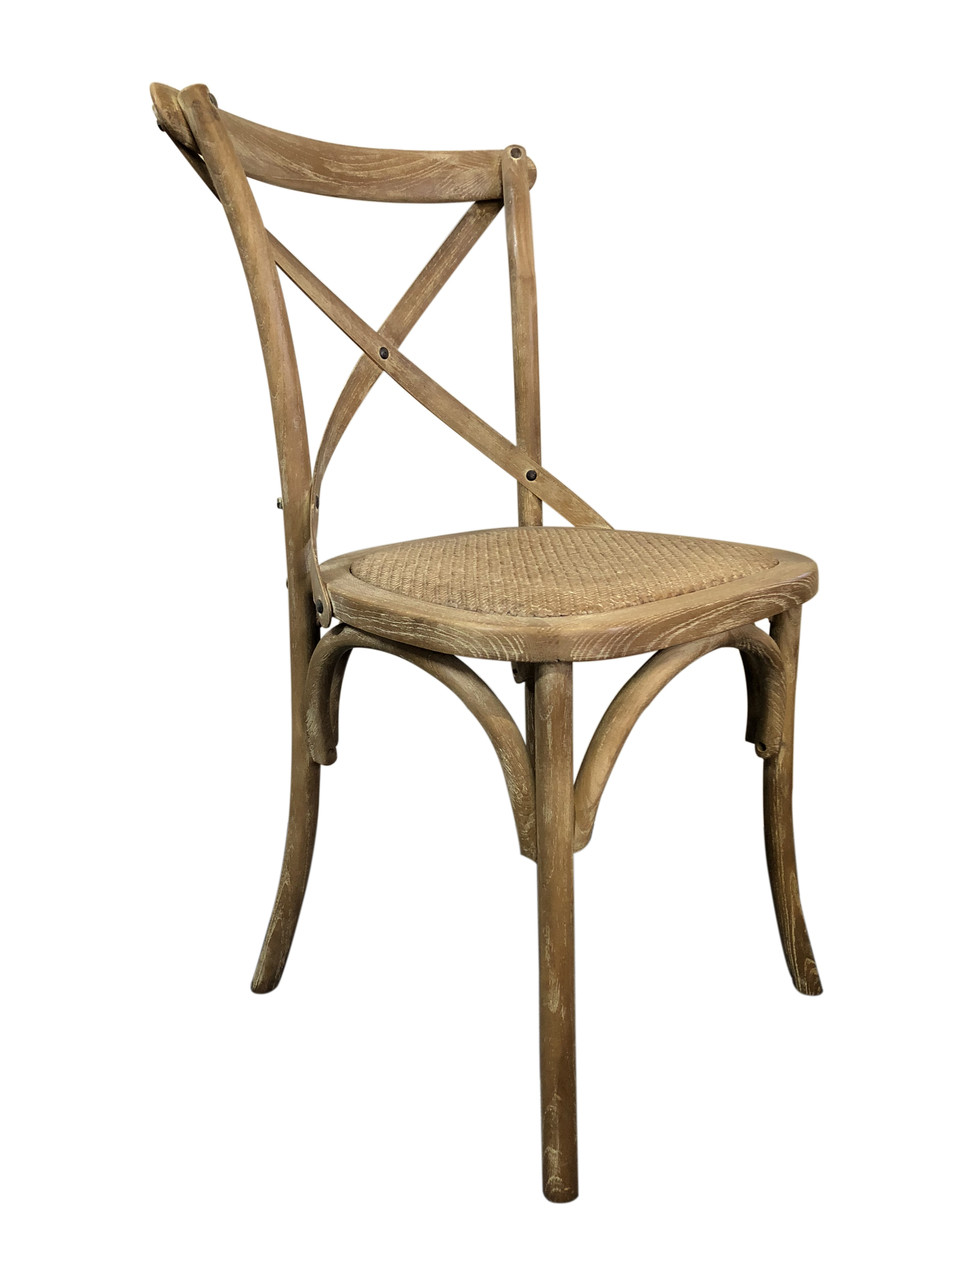 Cross Dining Chairs - American Oak - White-Washed Finish